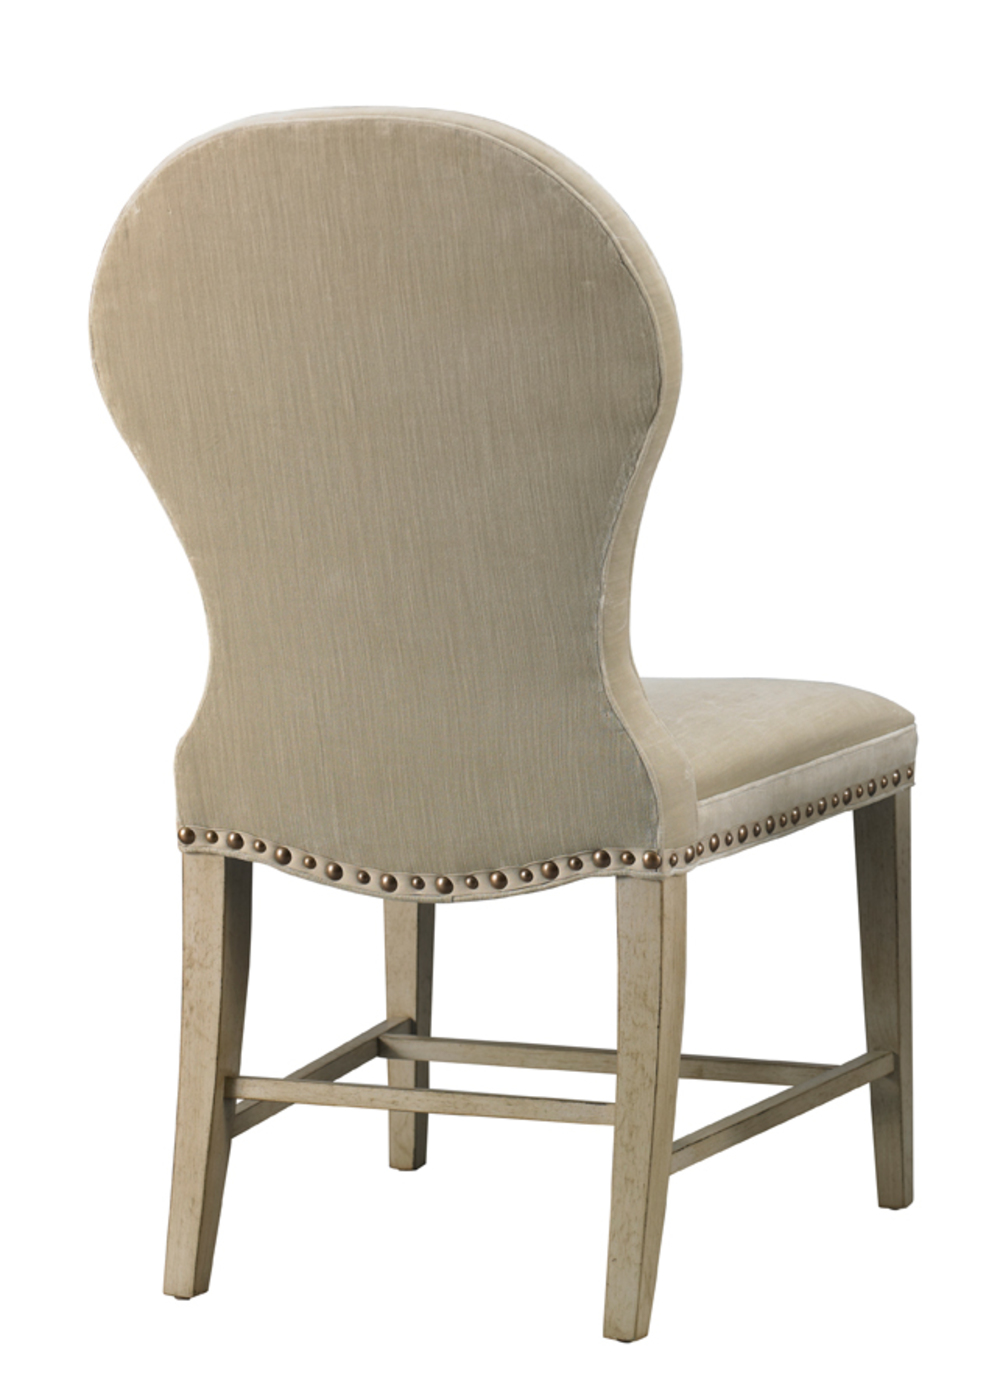 Mr. and Mrs. Howard by Sherrill Furniture - Mongolfier Armless Chair